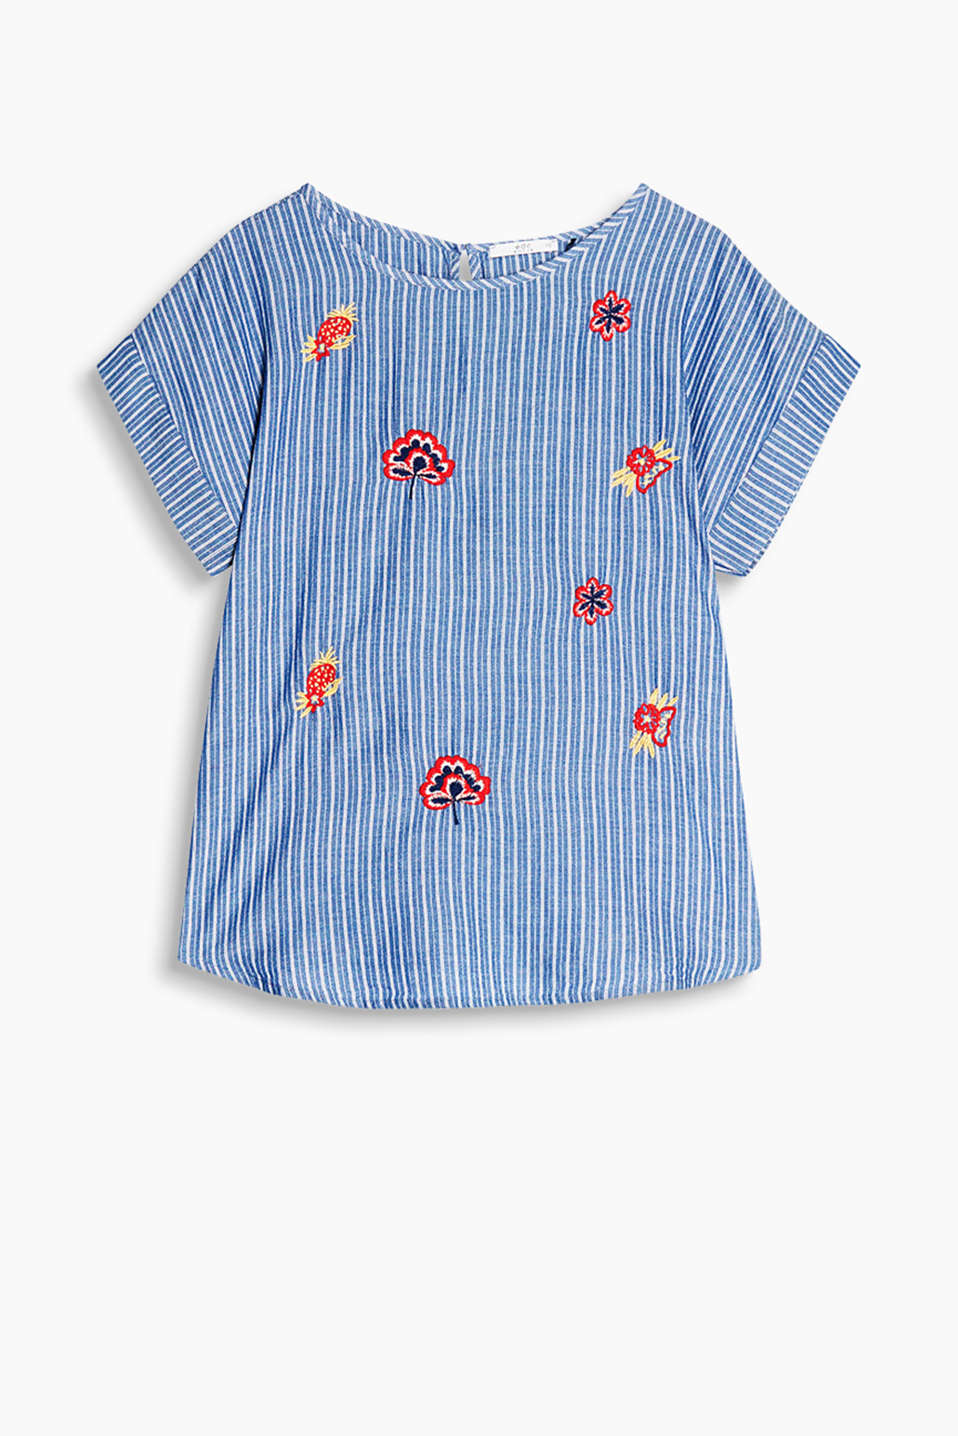 Boxy striped blouse with embroidered flowers, 100% cotton